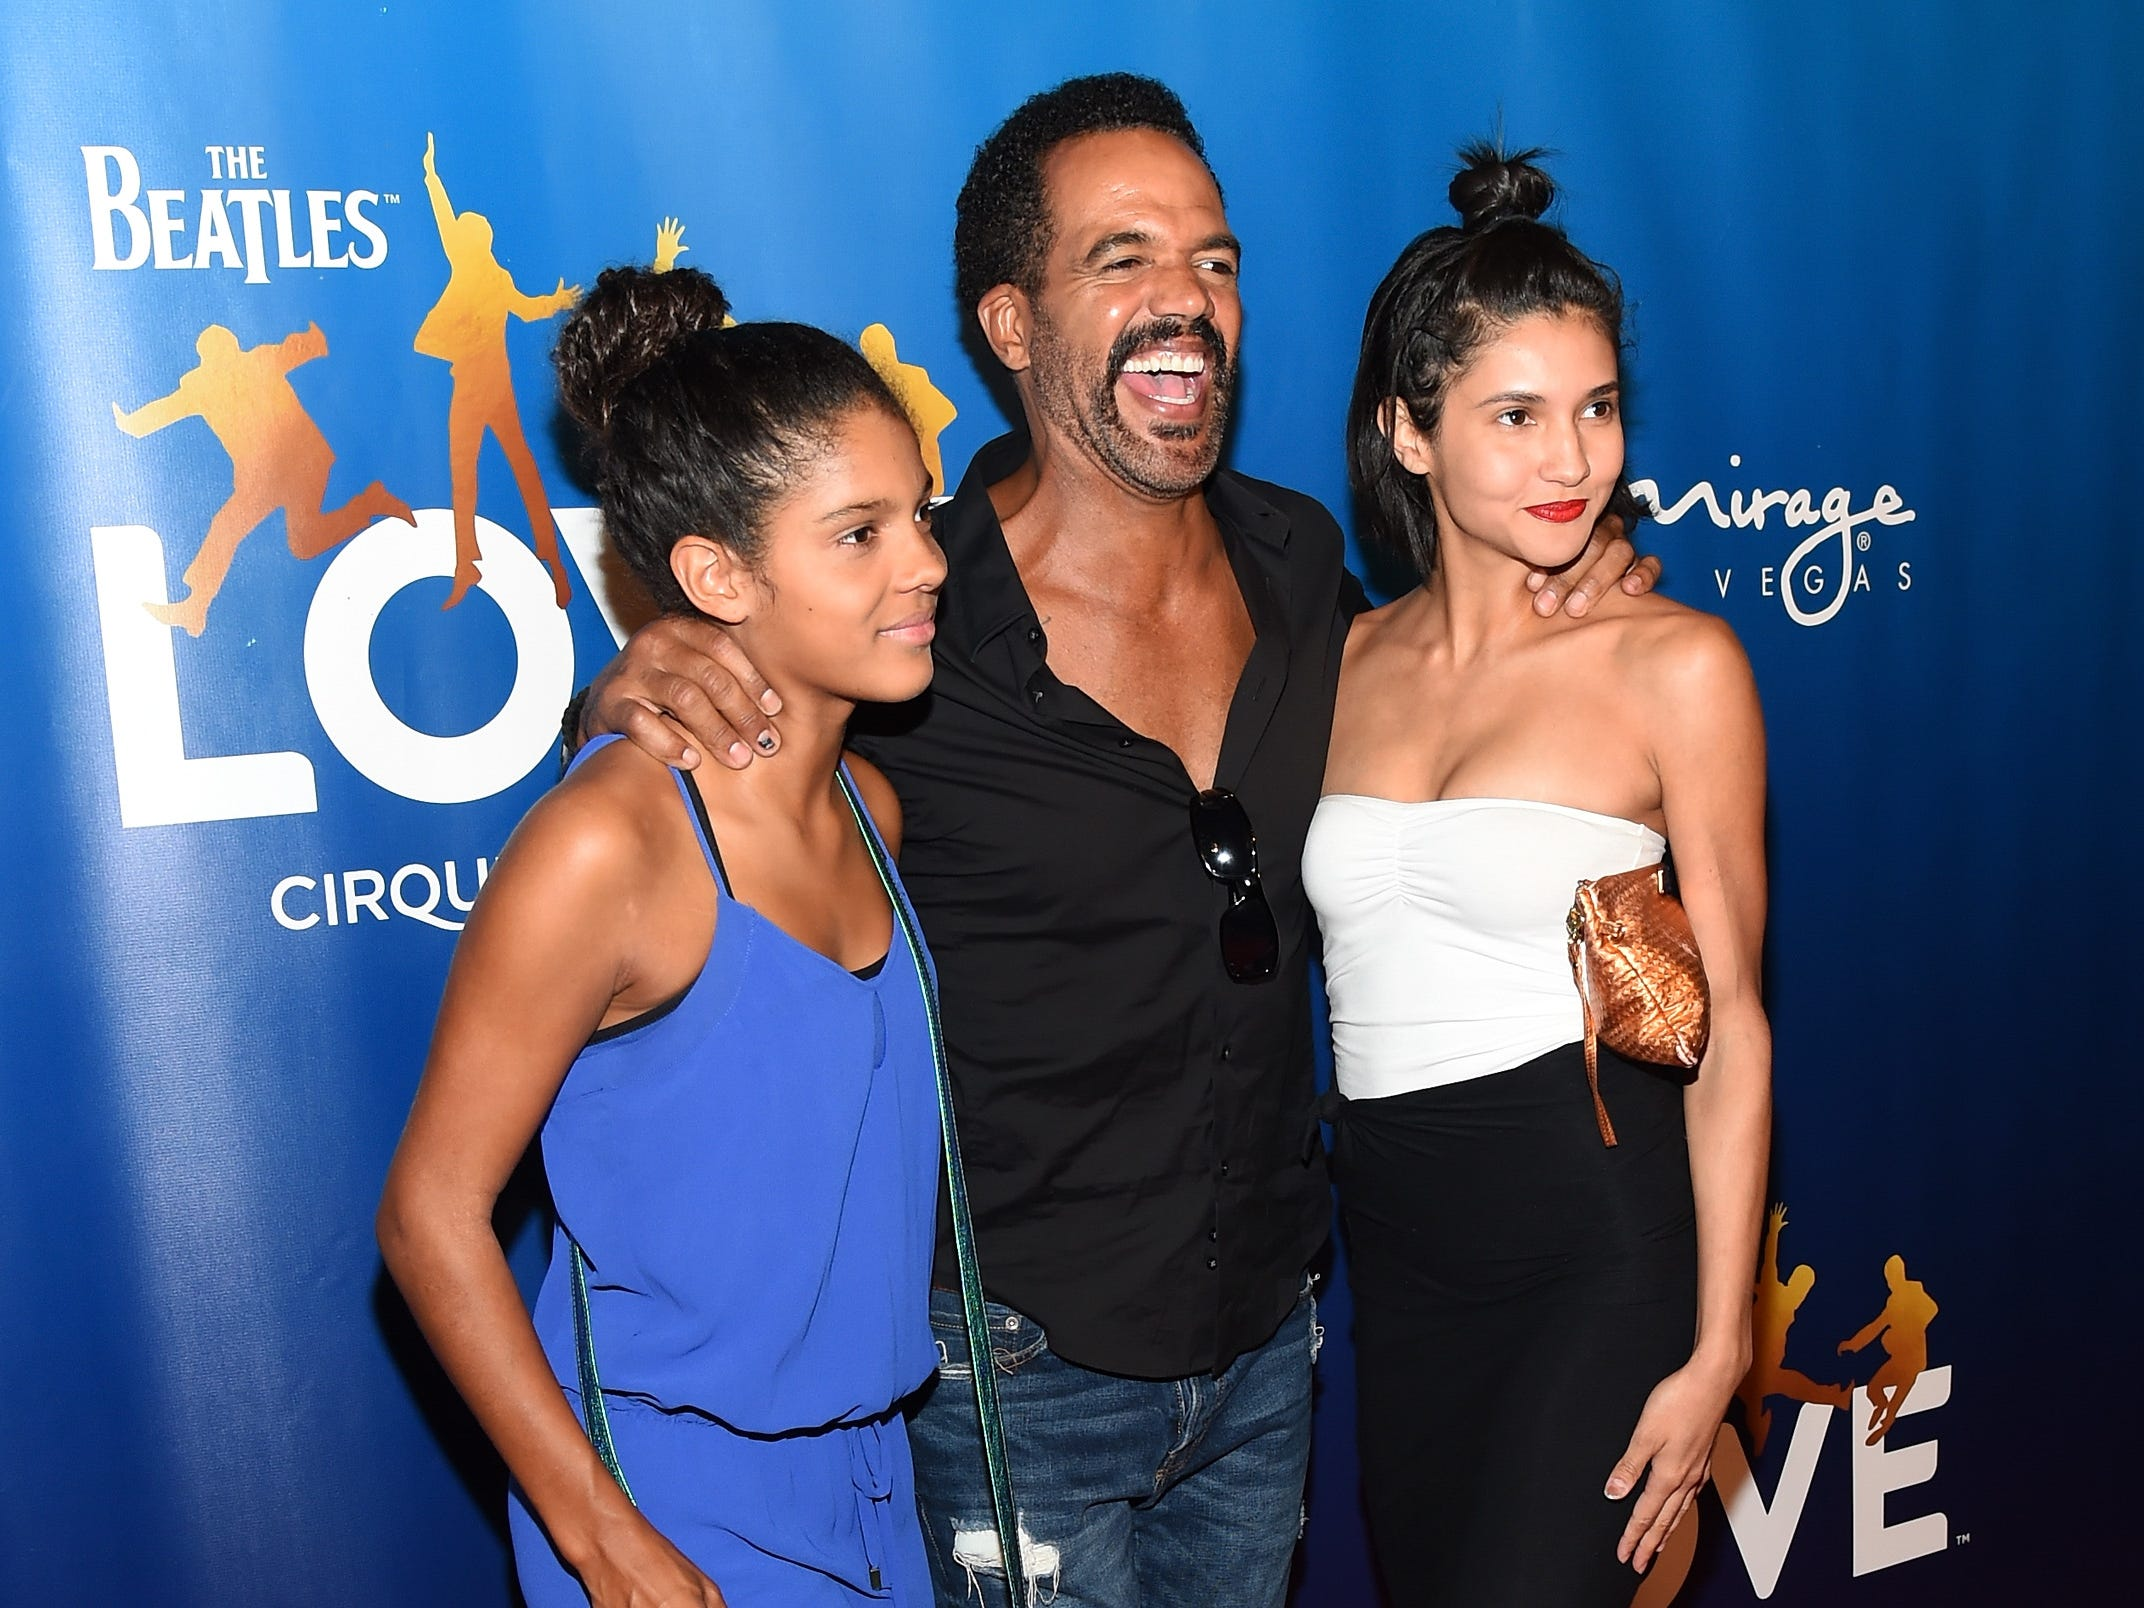 "Lola St. John, Kristoff St. John and Paris St. John attend the 10th anniversary celebration of ""The Beatles LOVE by Cirque du Soleil"" at The Mirage Hotel & Casino in Las Vegas, July 14, 2016."